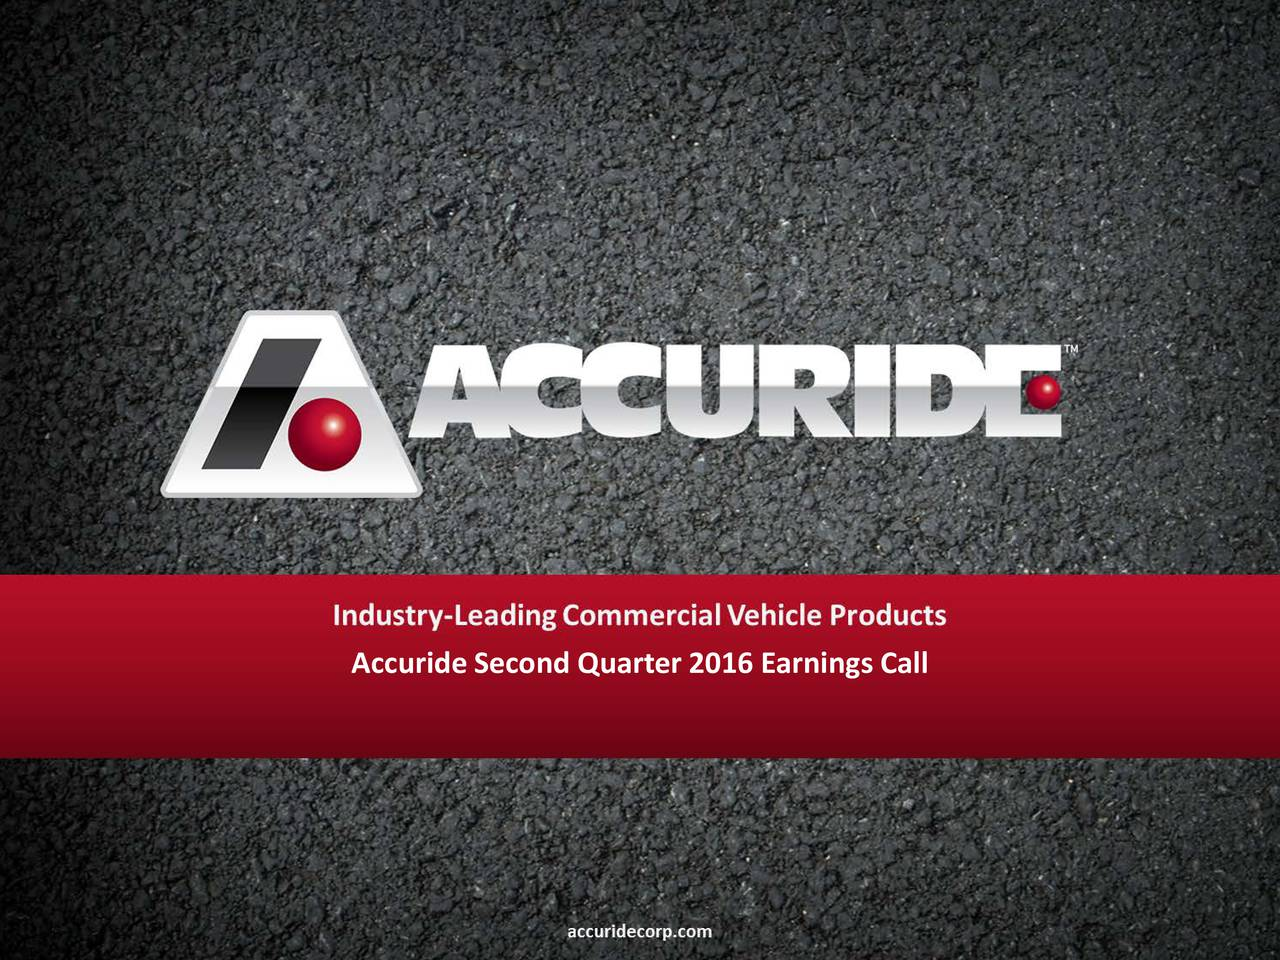 Accuride Second Quarter 2016 Earnings Call accuridecorp.com